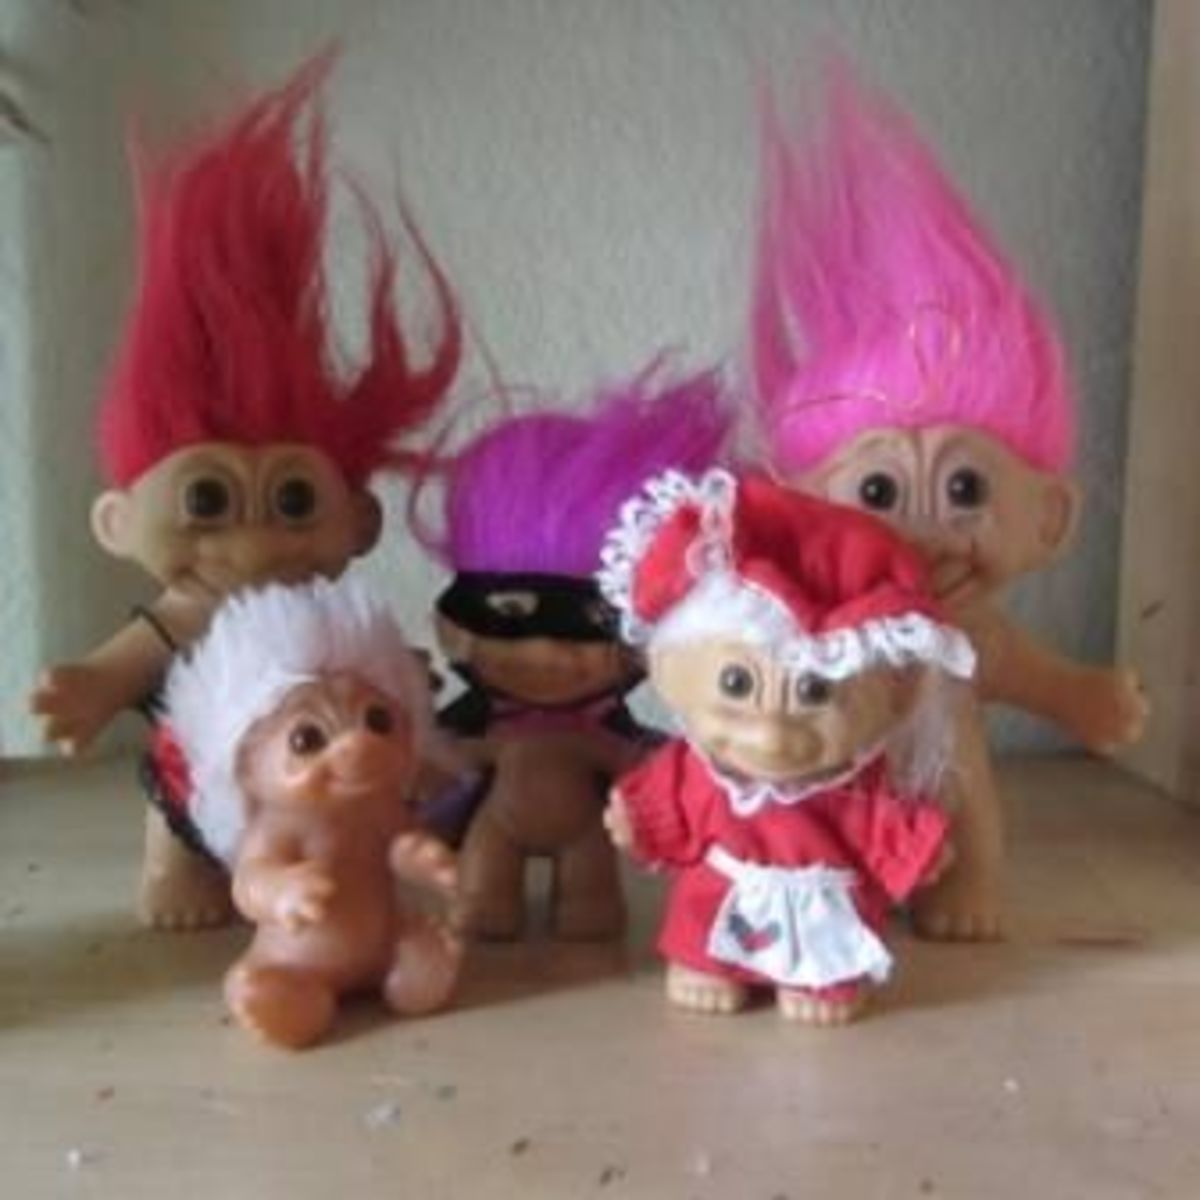 Newest Trolls - 5 for $1 at Thrift Store!